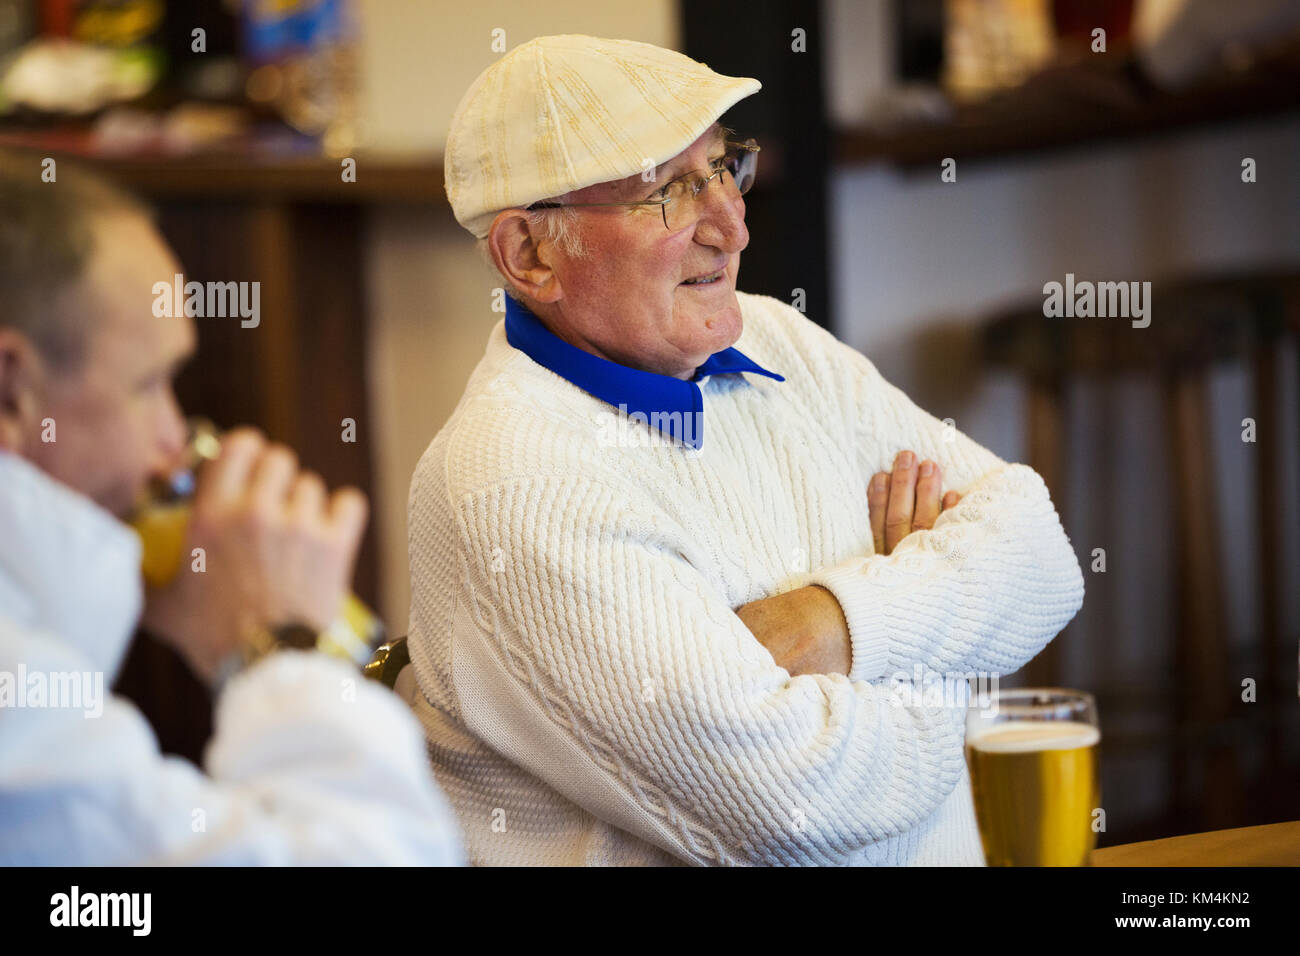 Two men at a lawn bowls club seated with pints of beer. Post match analysis. - Stock Image